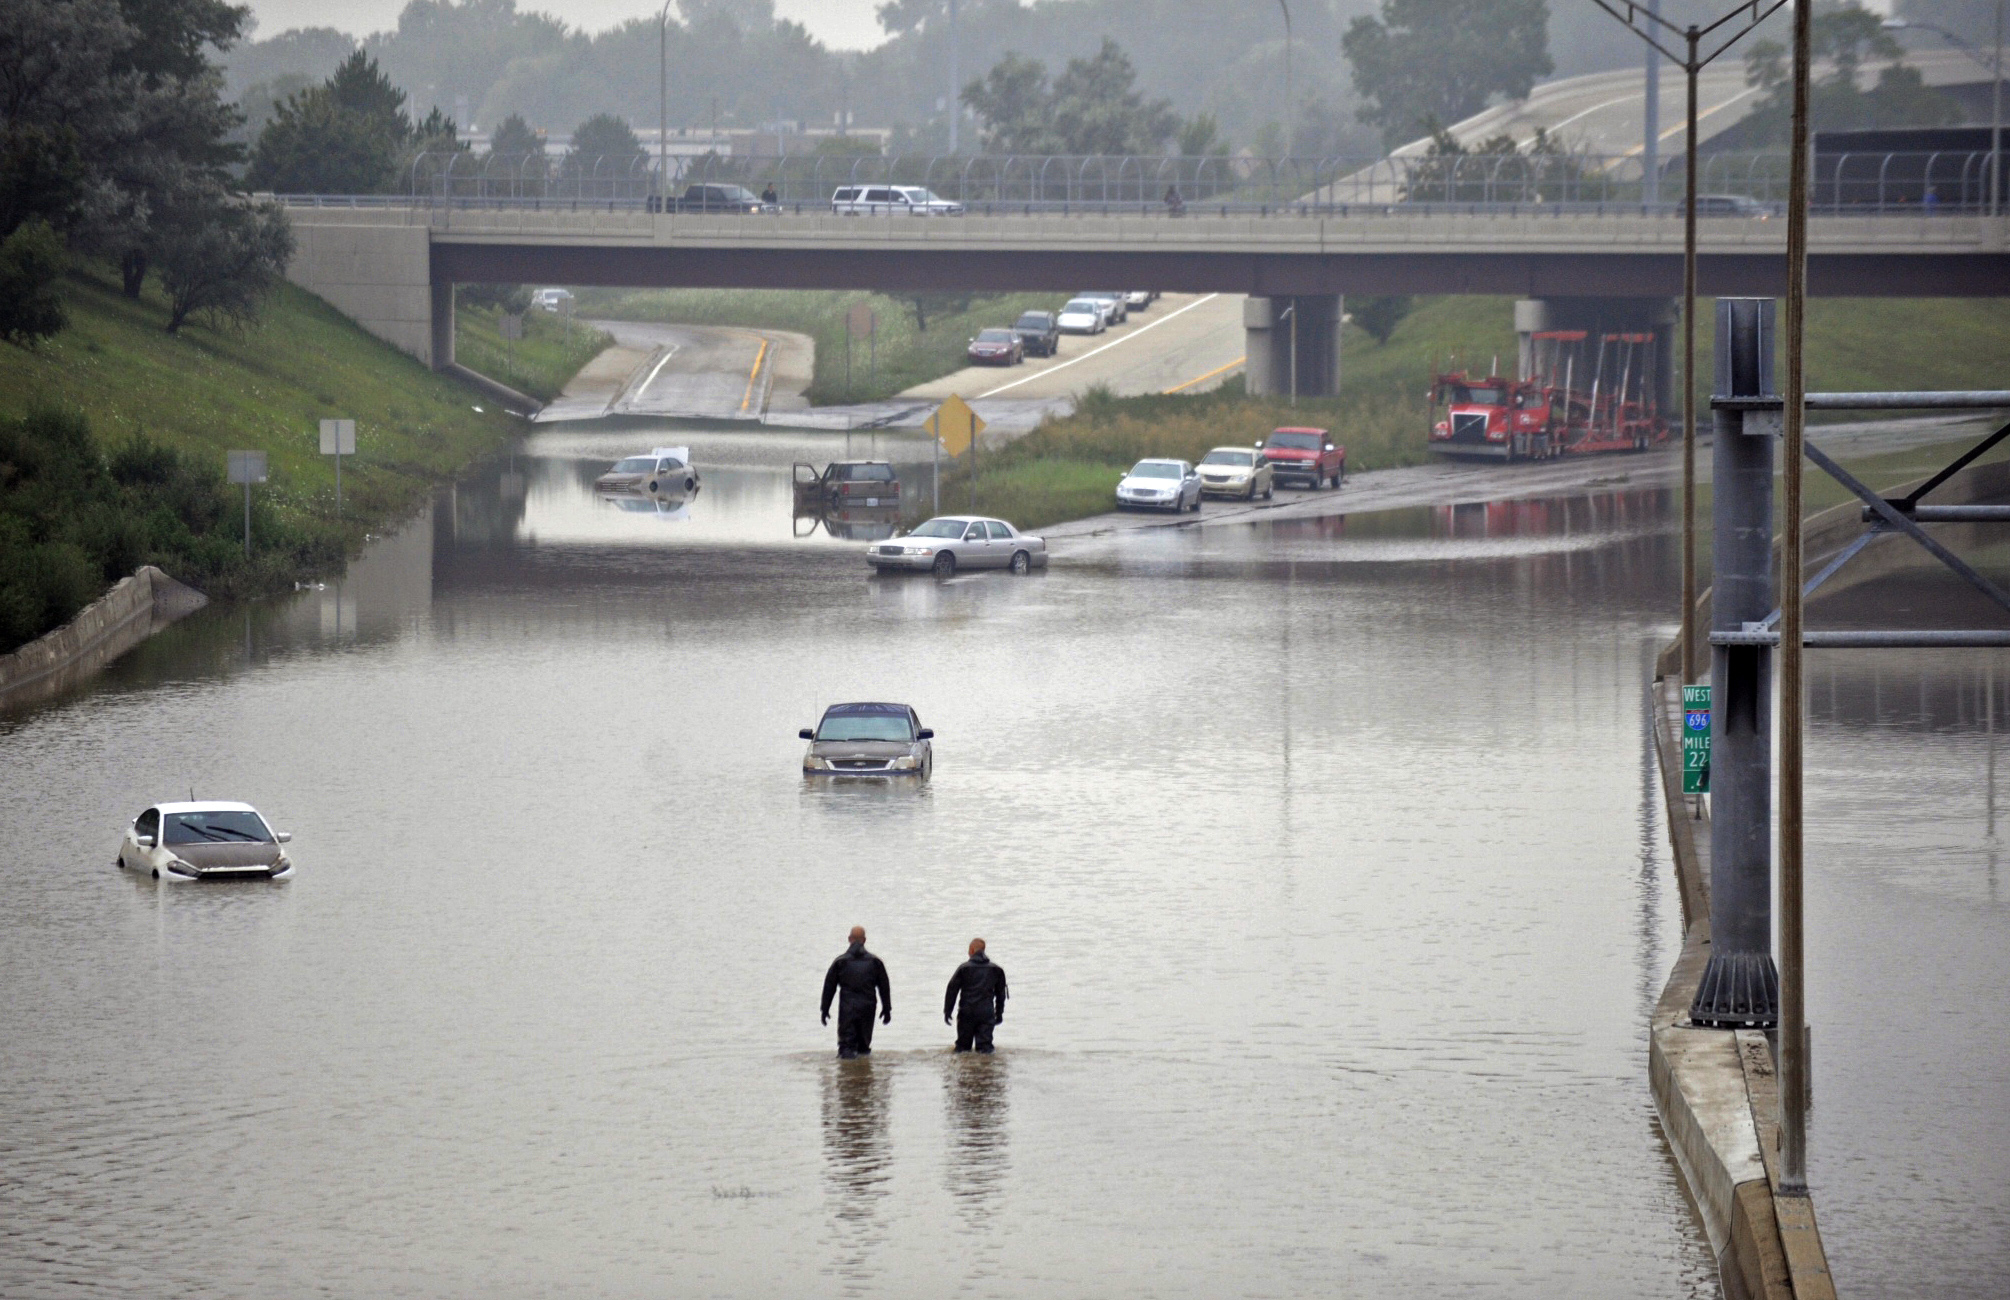 Cars are stranded along a flooded stretch of Interstate 696 at the Warren, Mich., city limits on Aug. 12, 2014. Police divers are searching for anyone trapped in their vehicles. Warren Mayor James Fouts said roughly 1,000 vehicles had been abandoned in floodwaters.